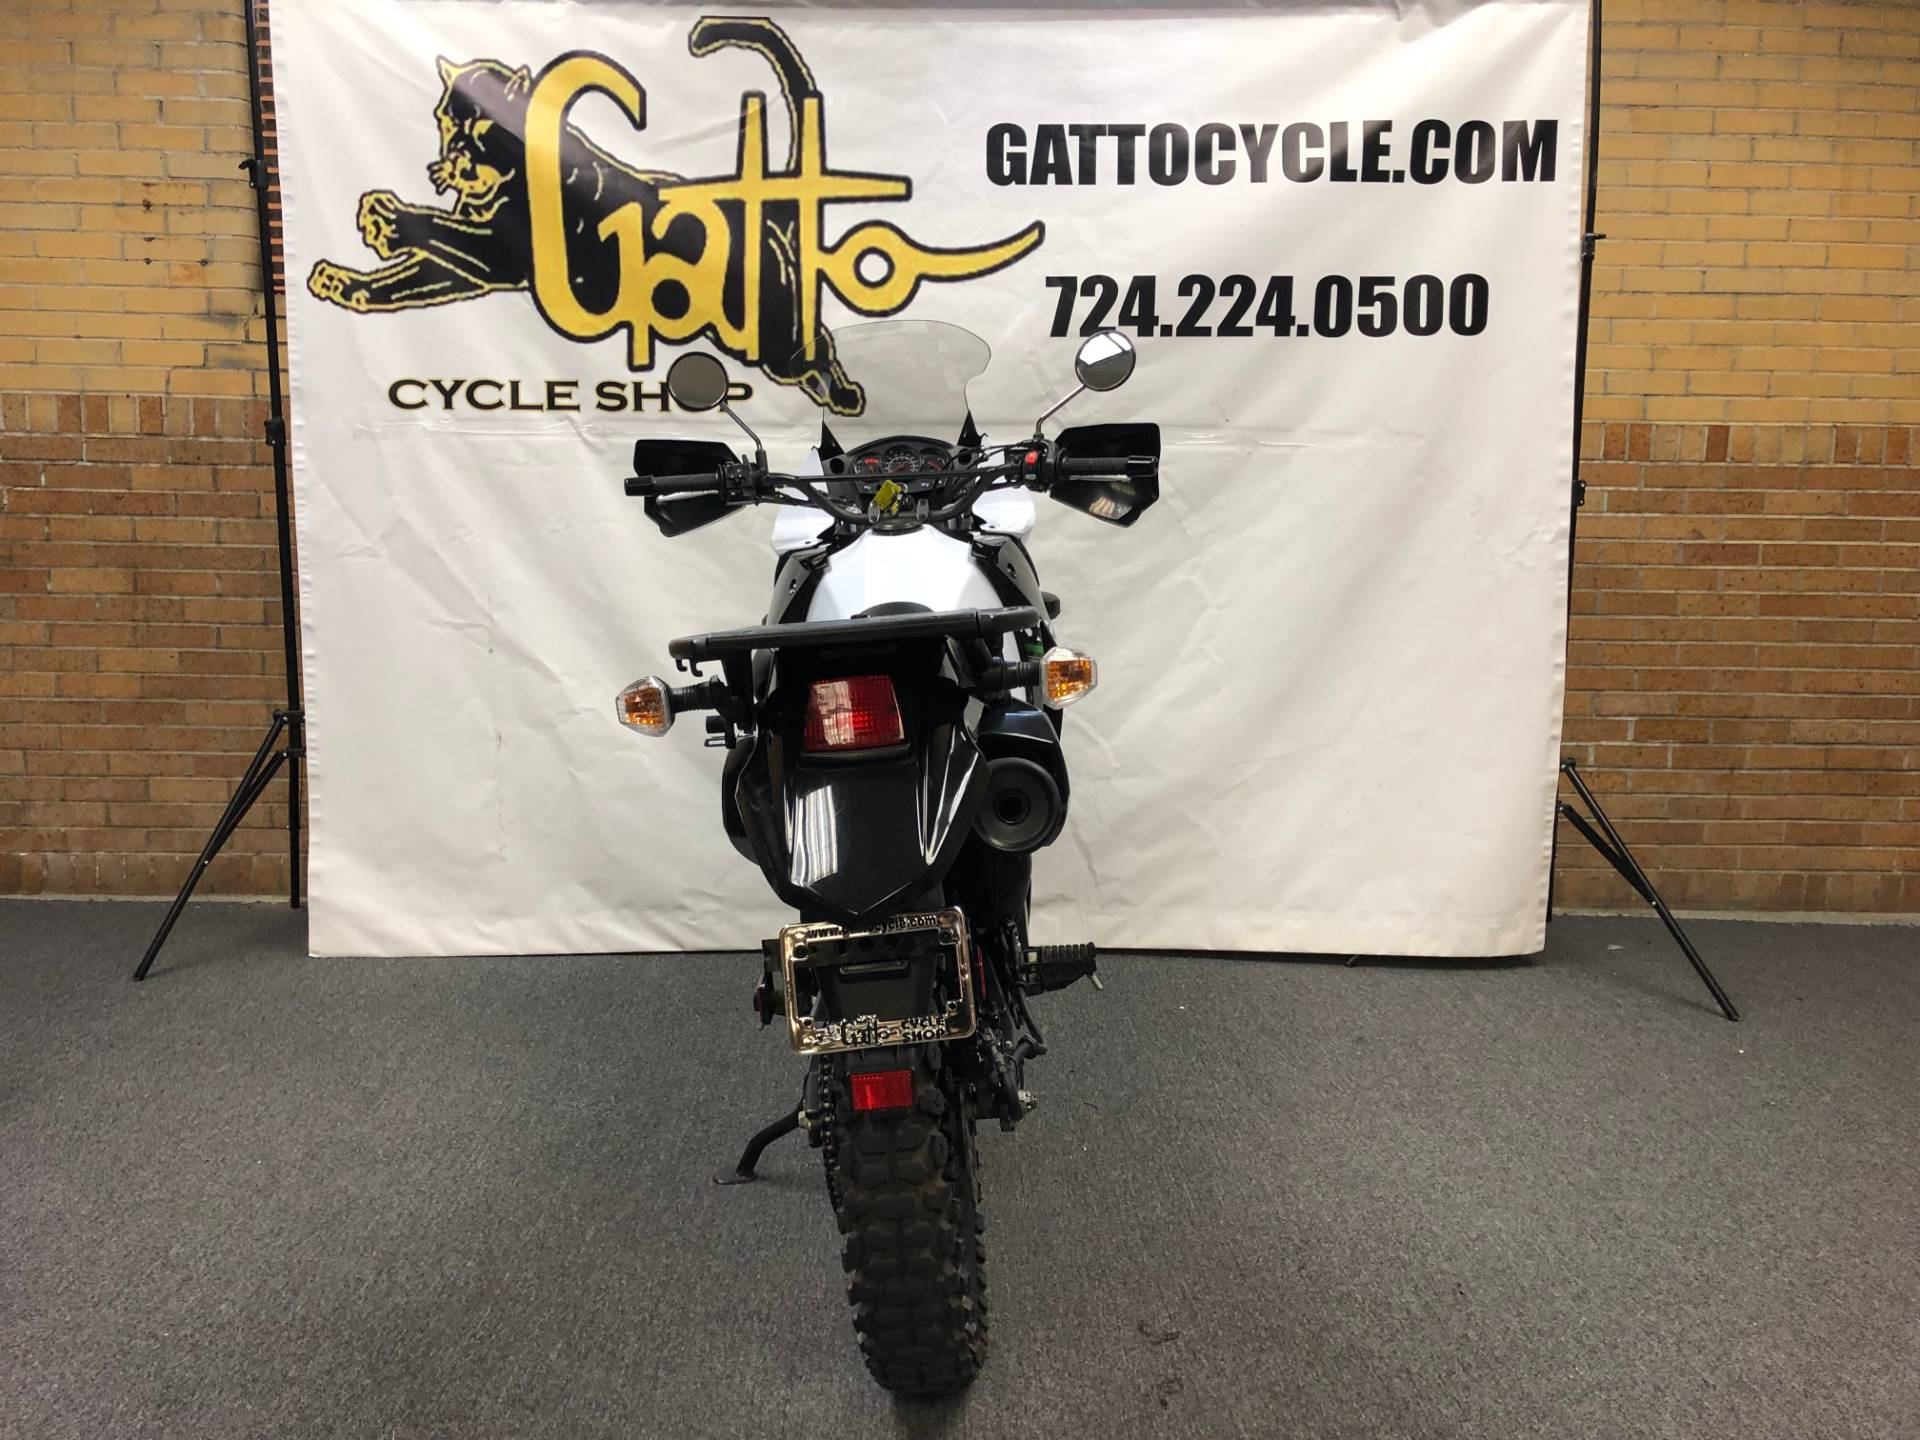 2015 Kawasaki KLR™650 in Tarentum, Pennsylvania - Photo 4